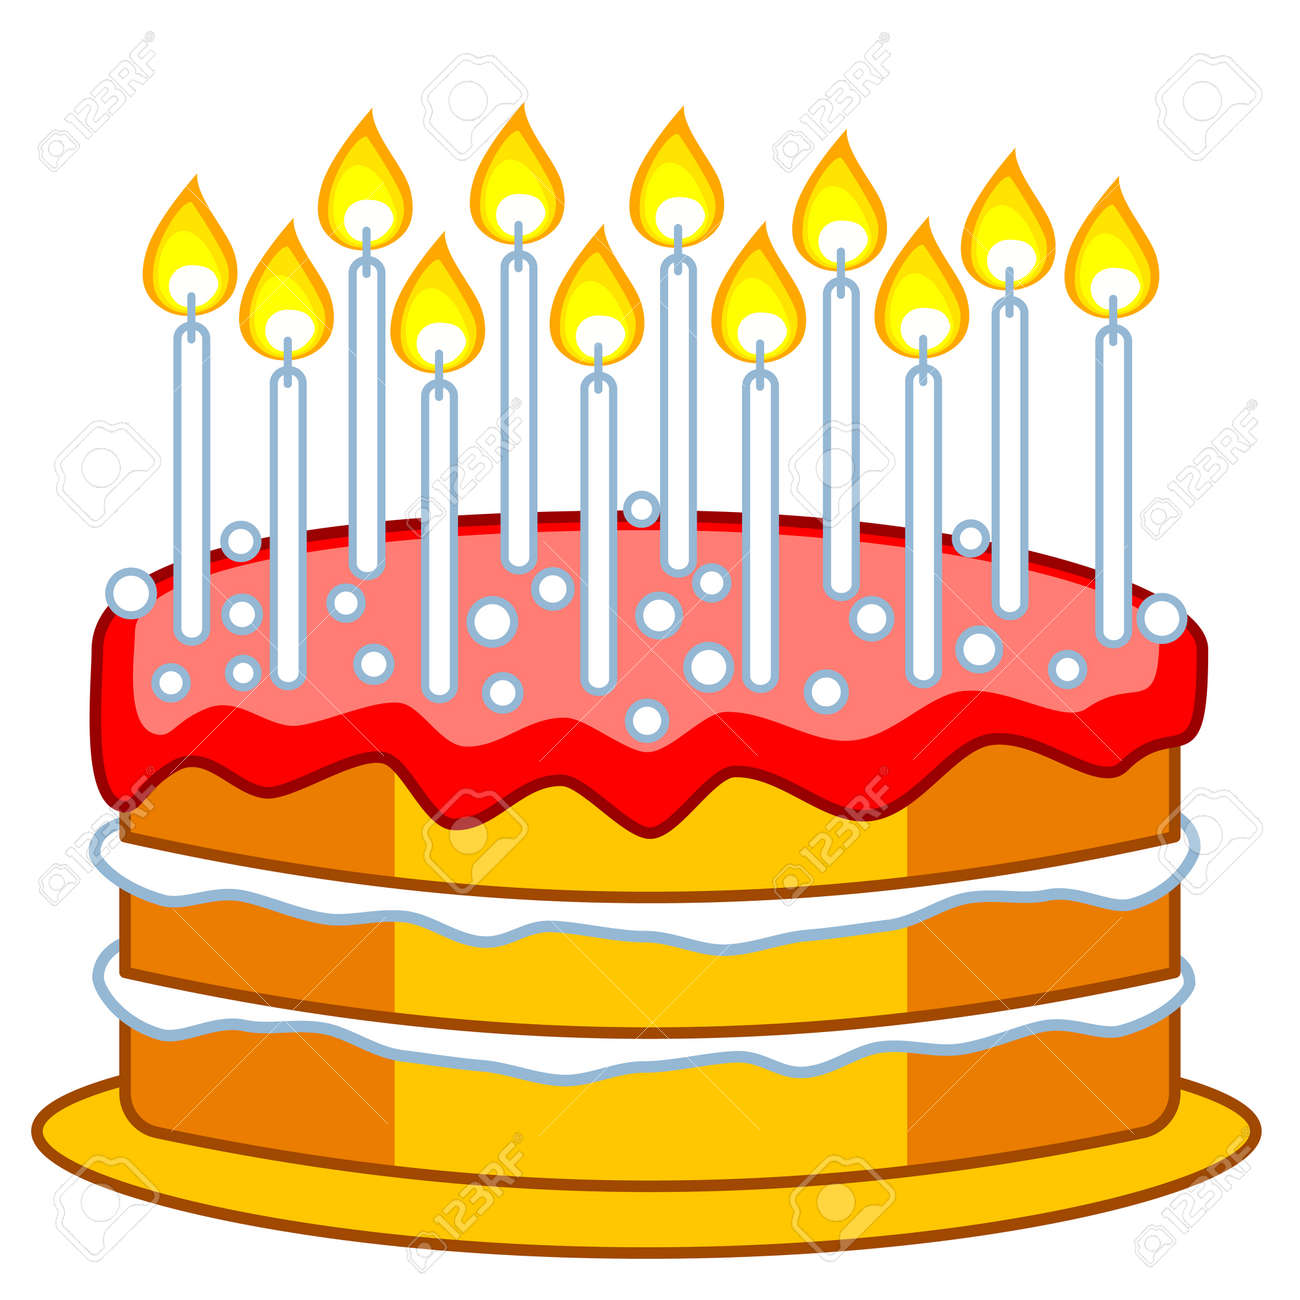 Illustration Of The Birthday Cake With Candles Stock Vector